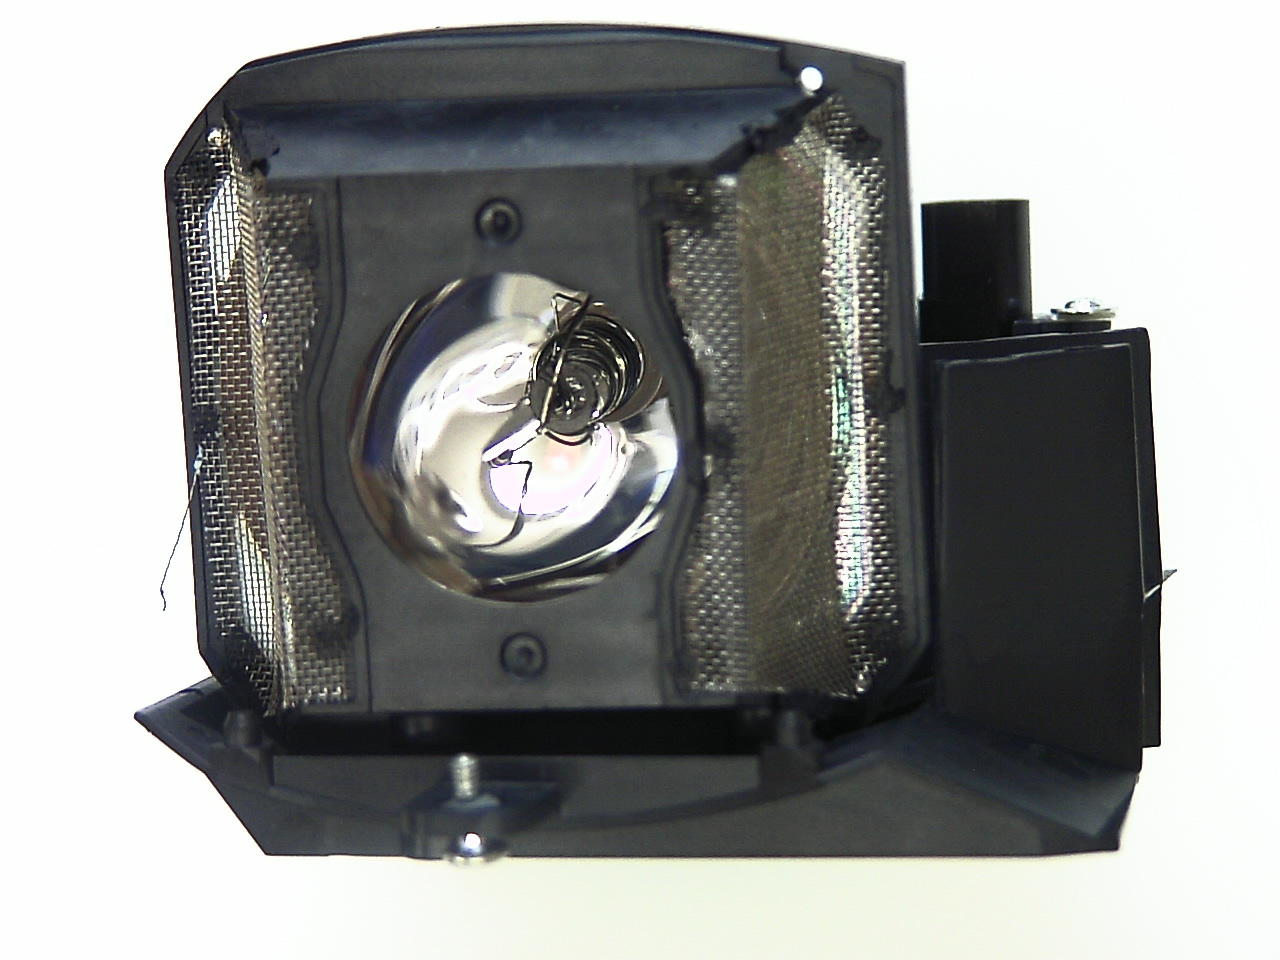 V7 Projector Lamp for selected projectors by PLUS, TAXAN